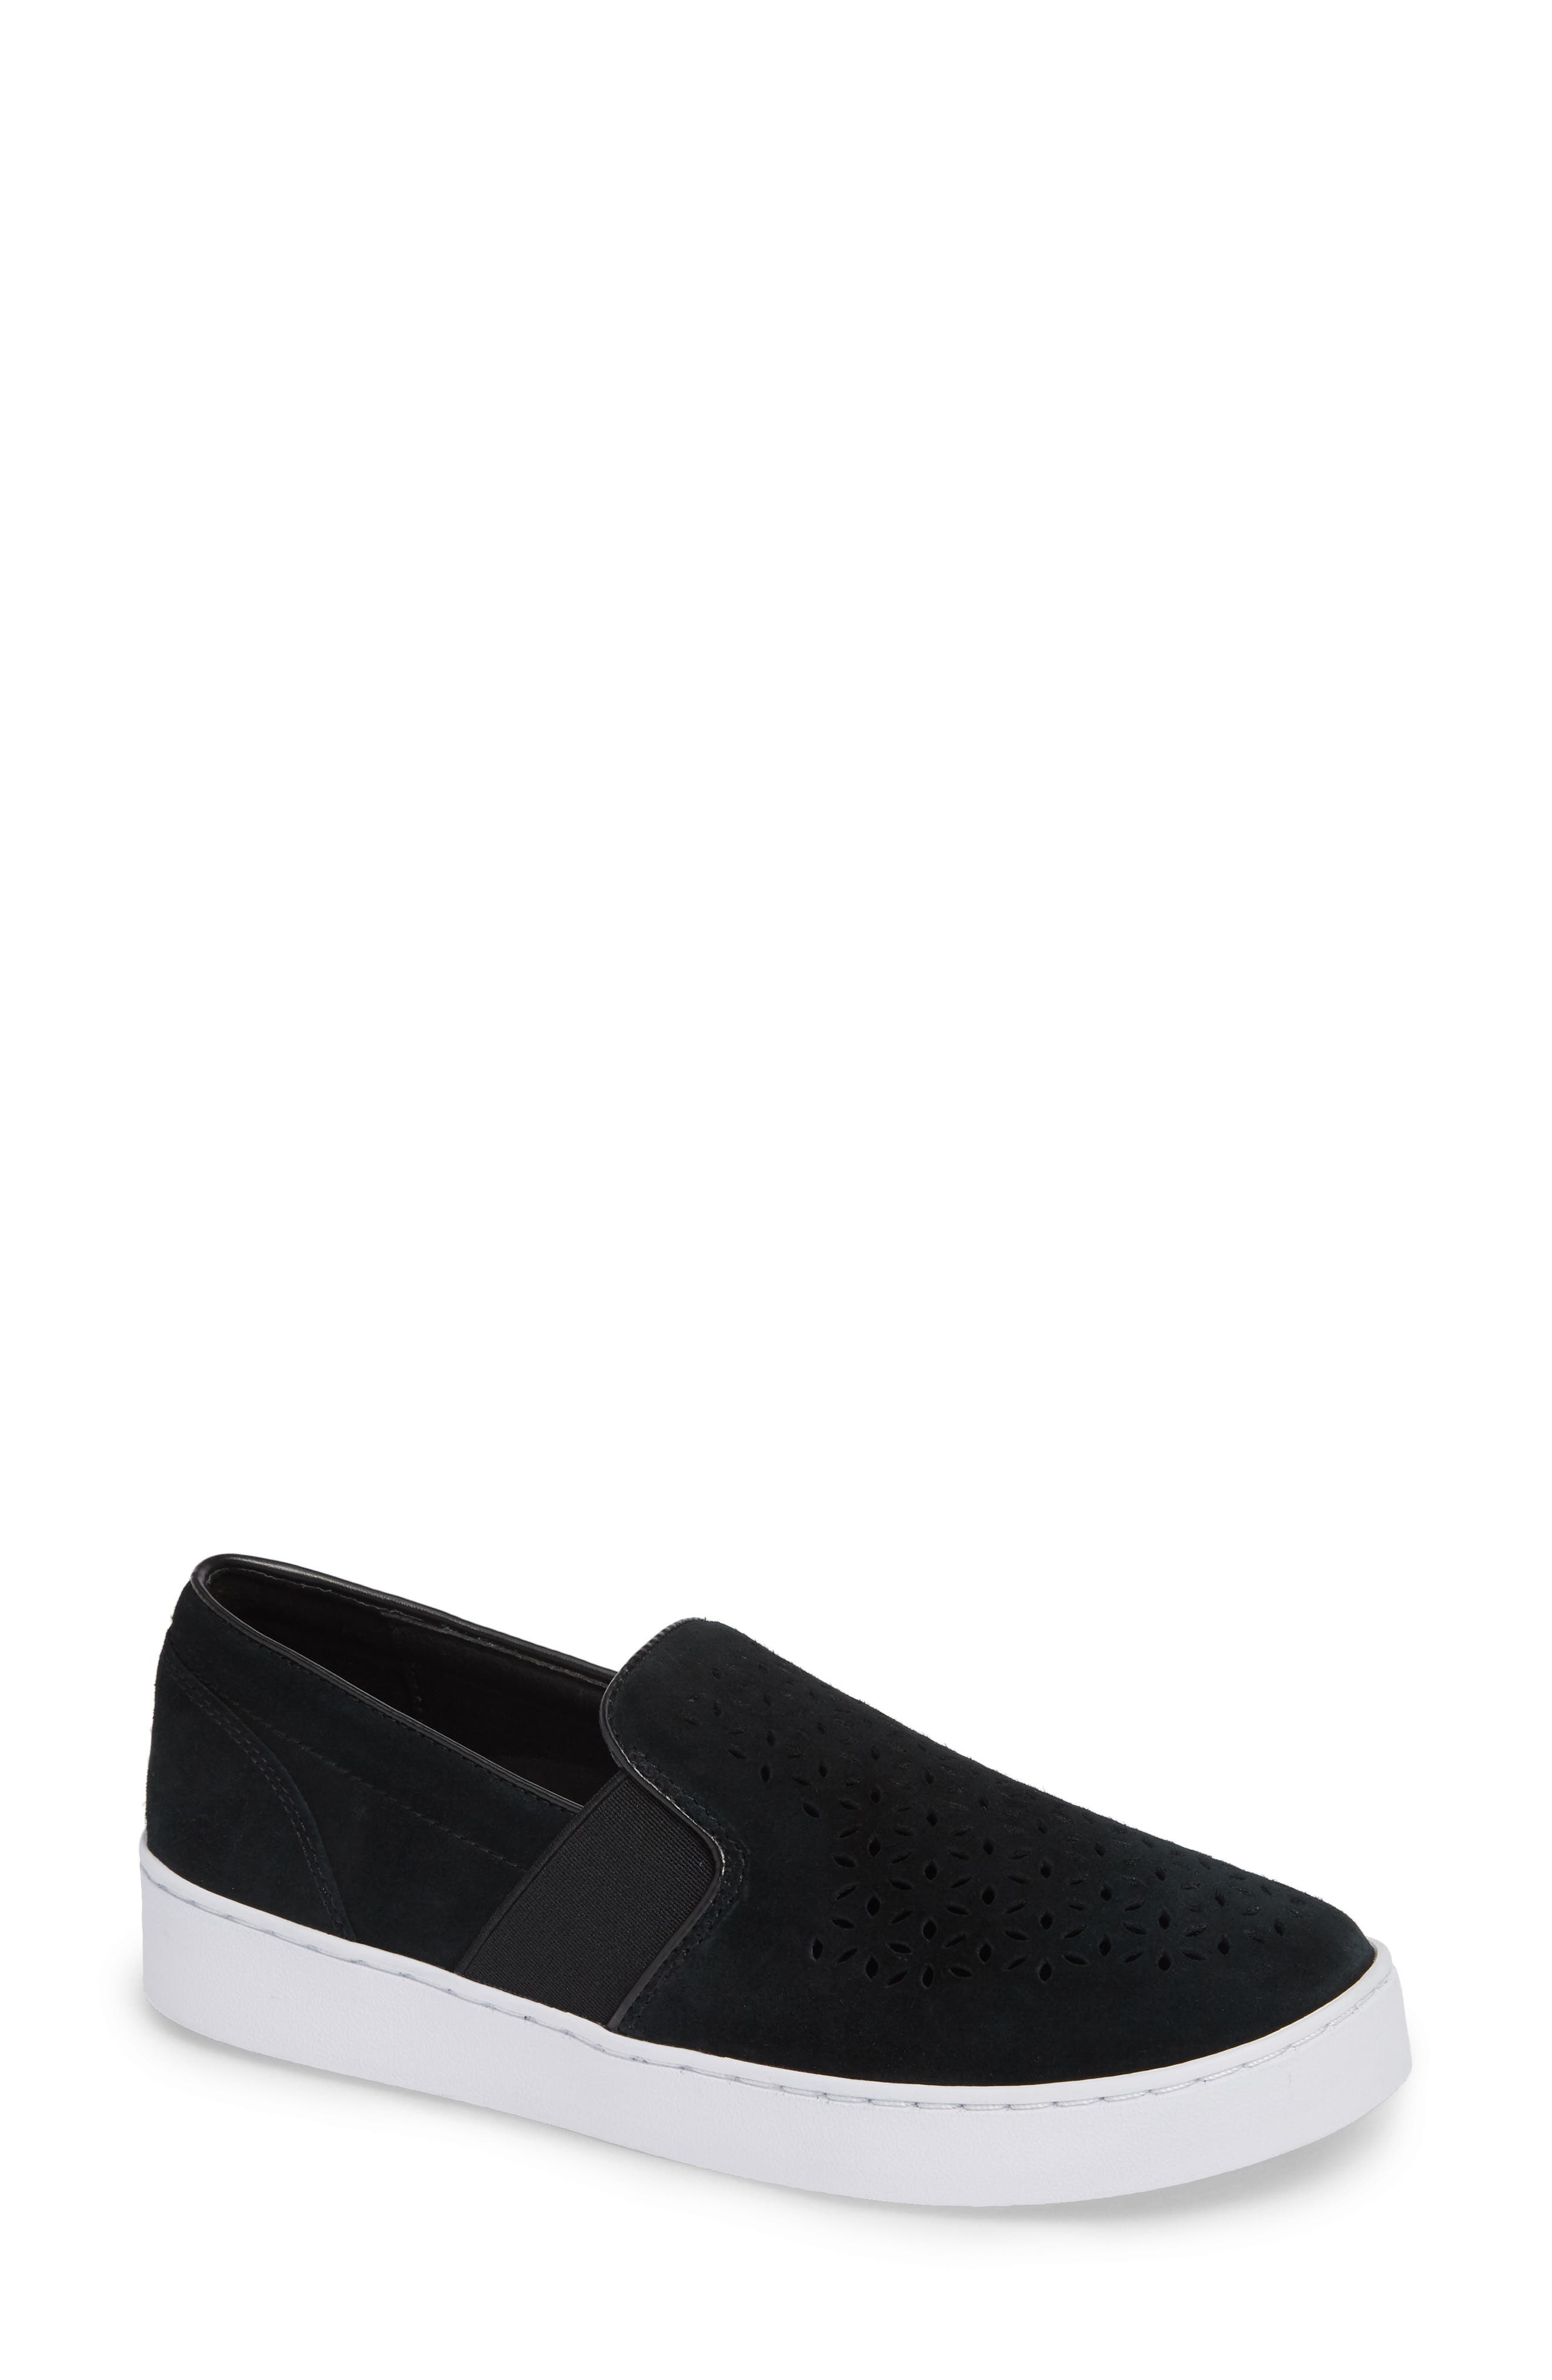 Kani Perforated Slip-On Sneaker, Main, color, BLACK NUBUCK